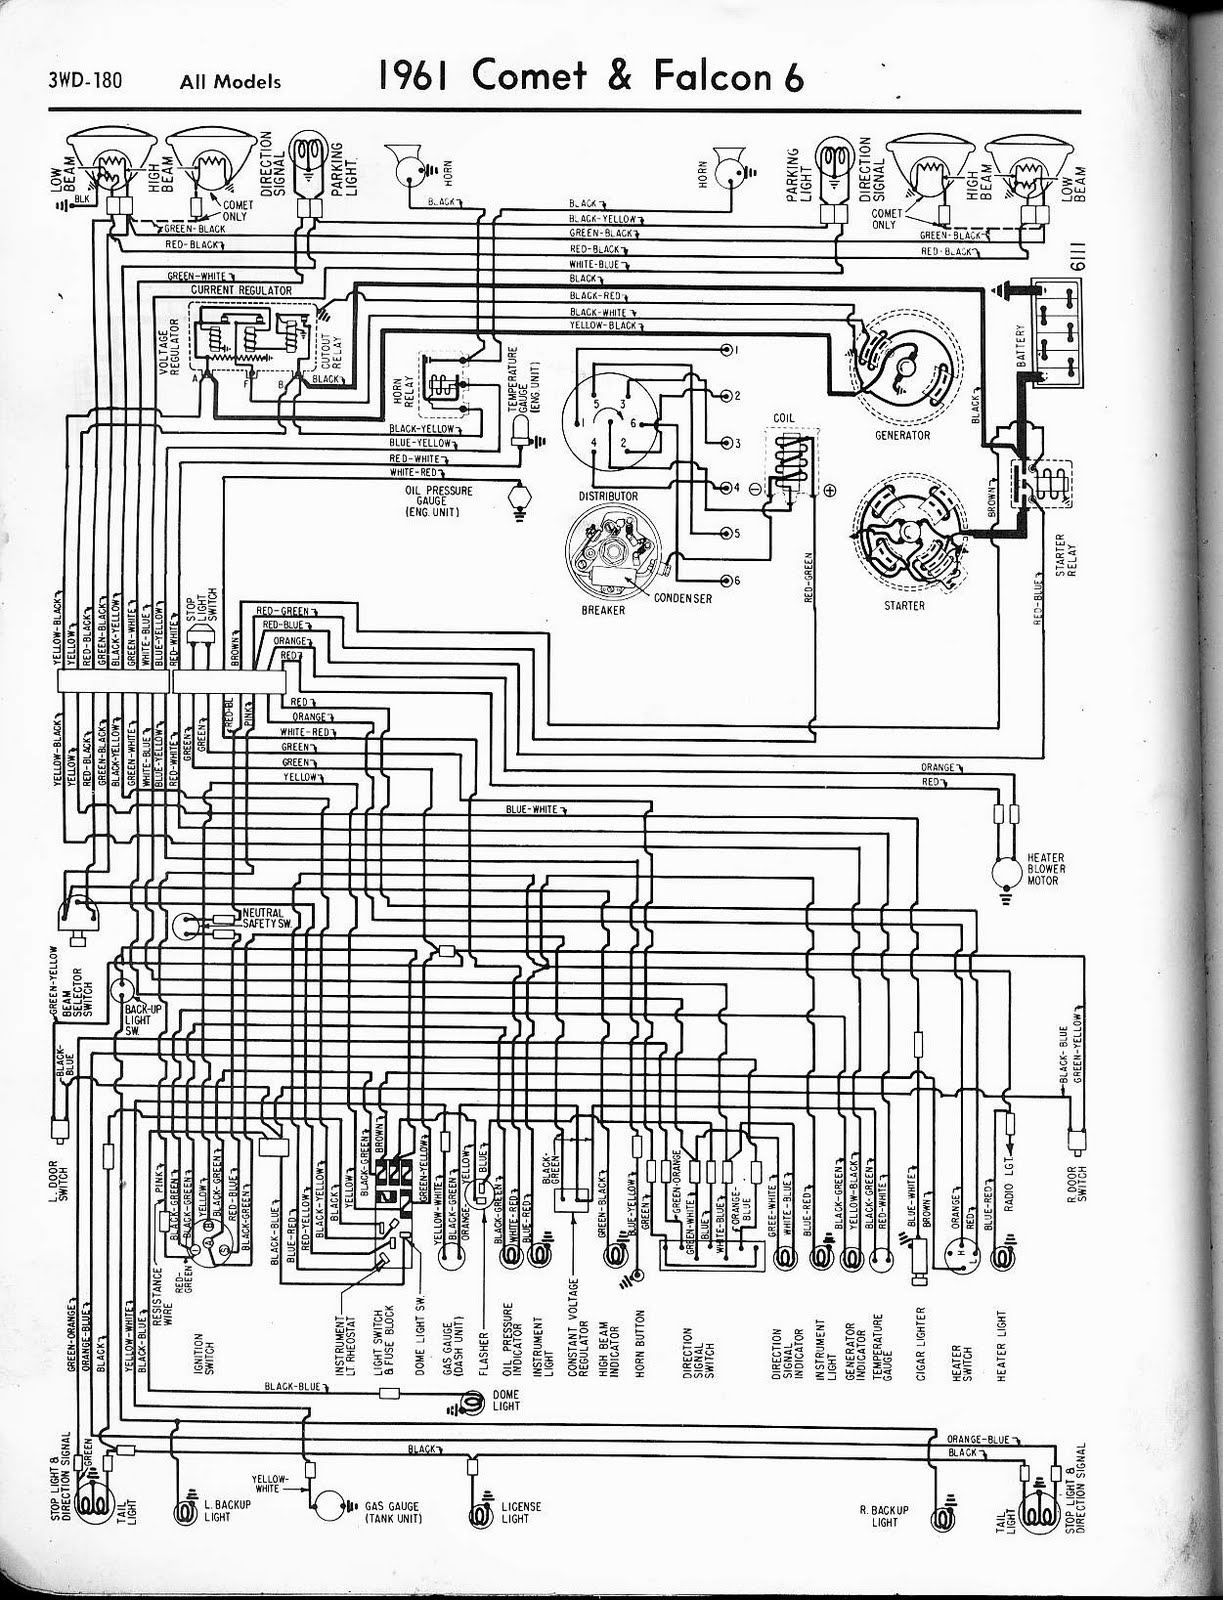 wiring diagram the wiring diagram auto wiring diagrams wiring diagrams for car or truck wiring